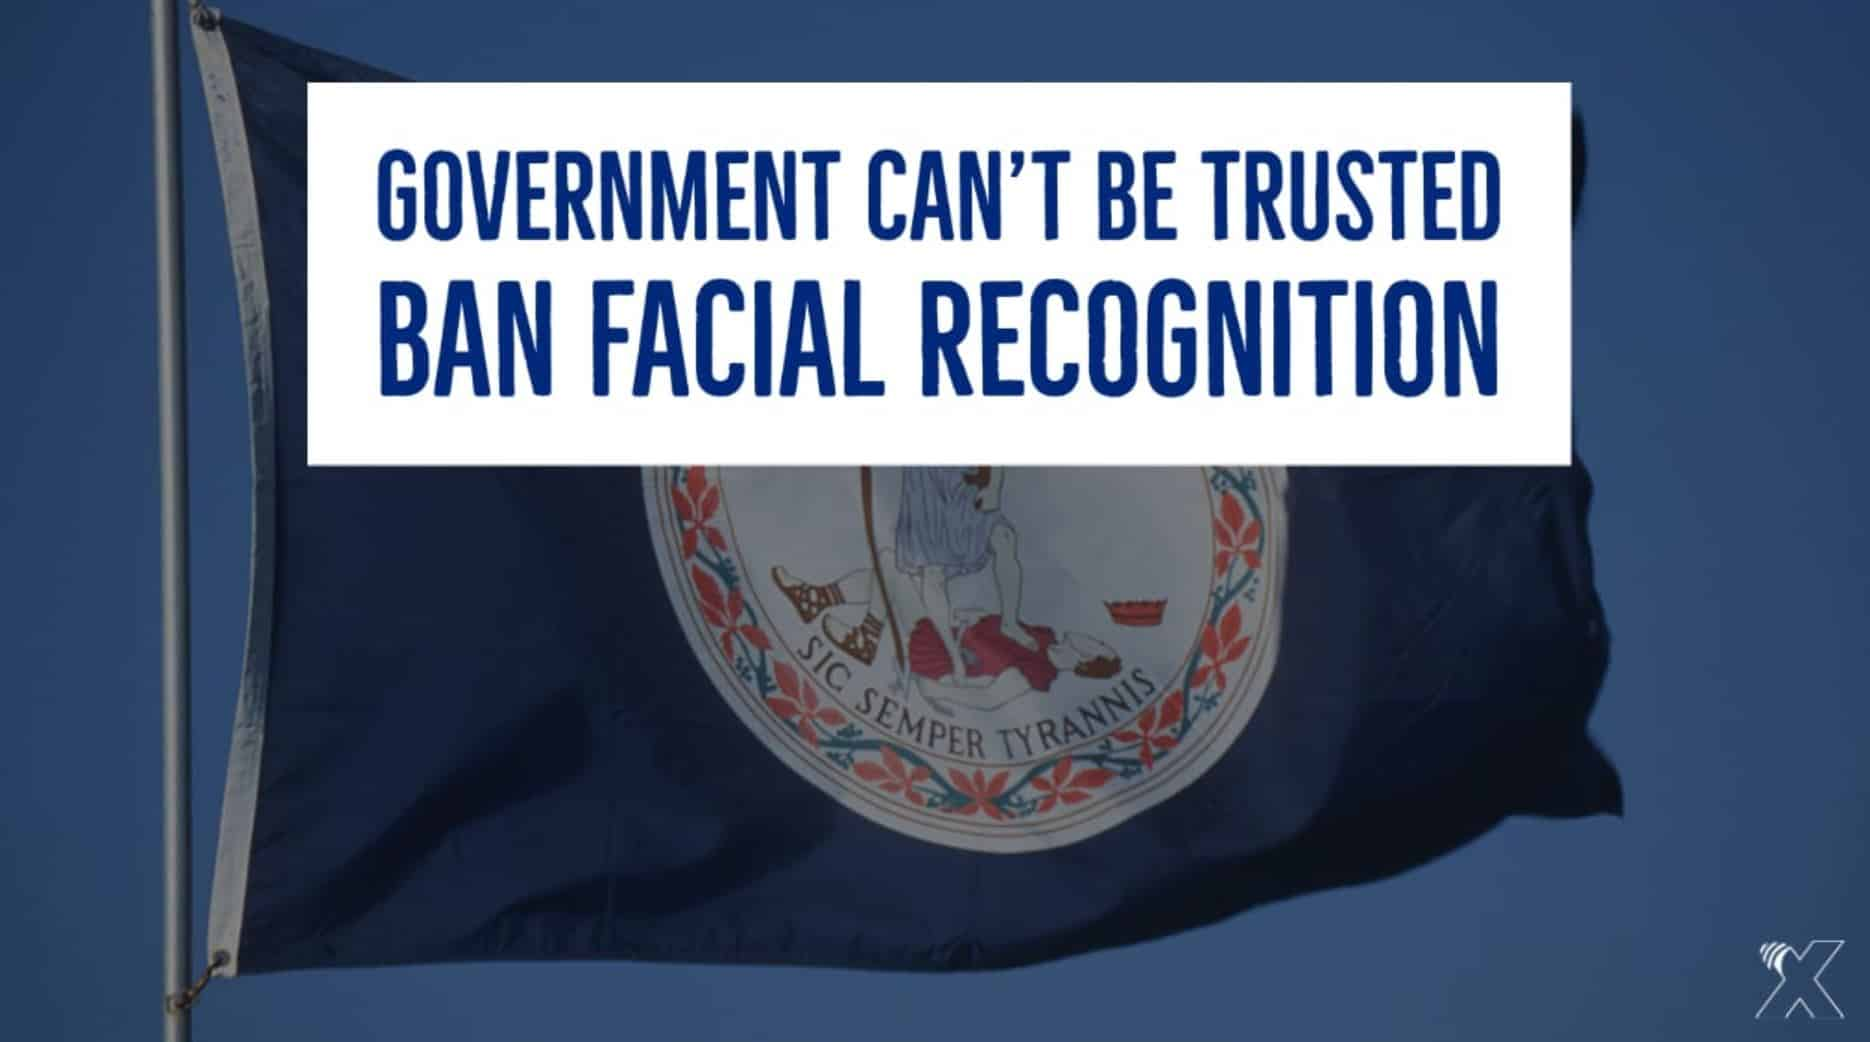 Virginia House Passes Bill That Sets Foundation to Ban Facial Recognition Surveillance 1